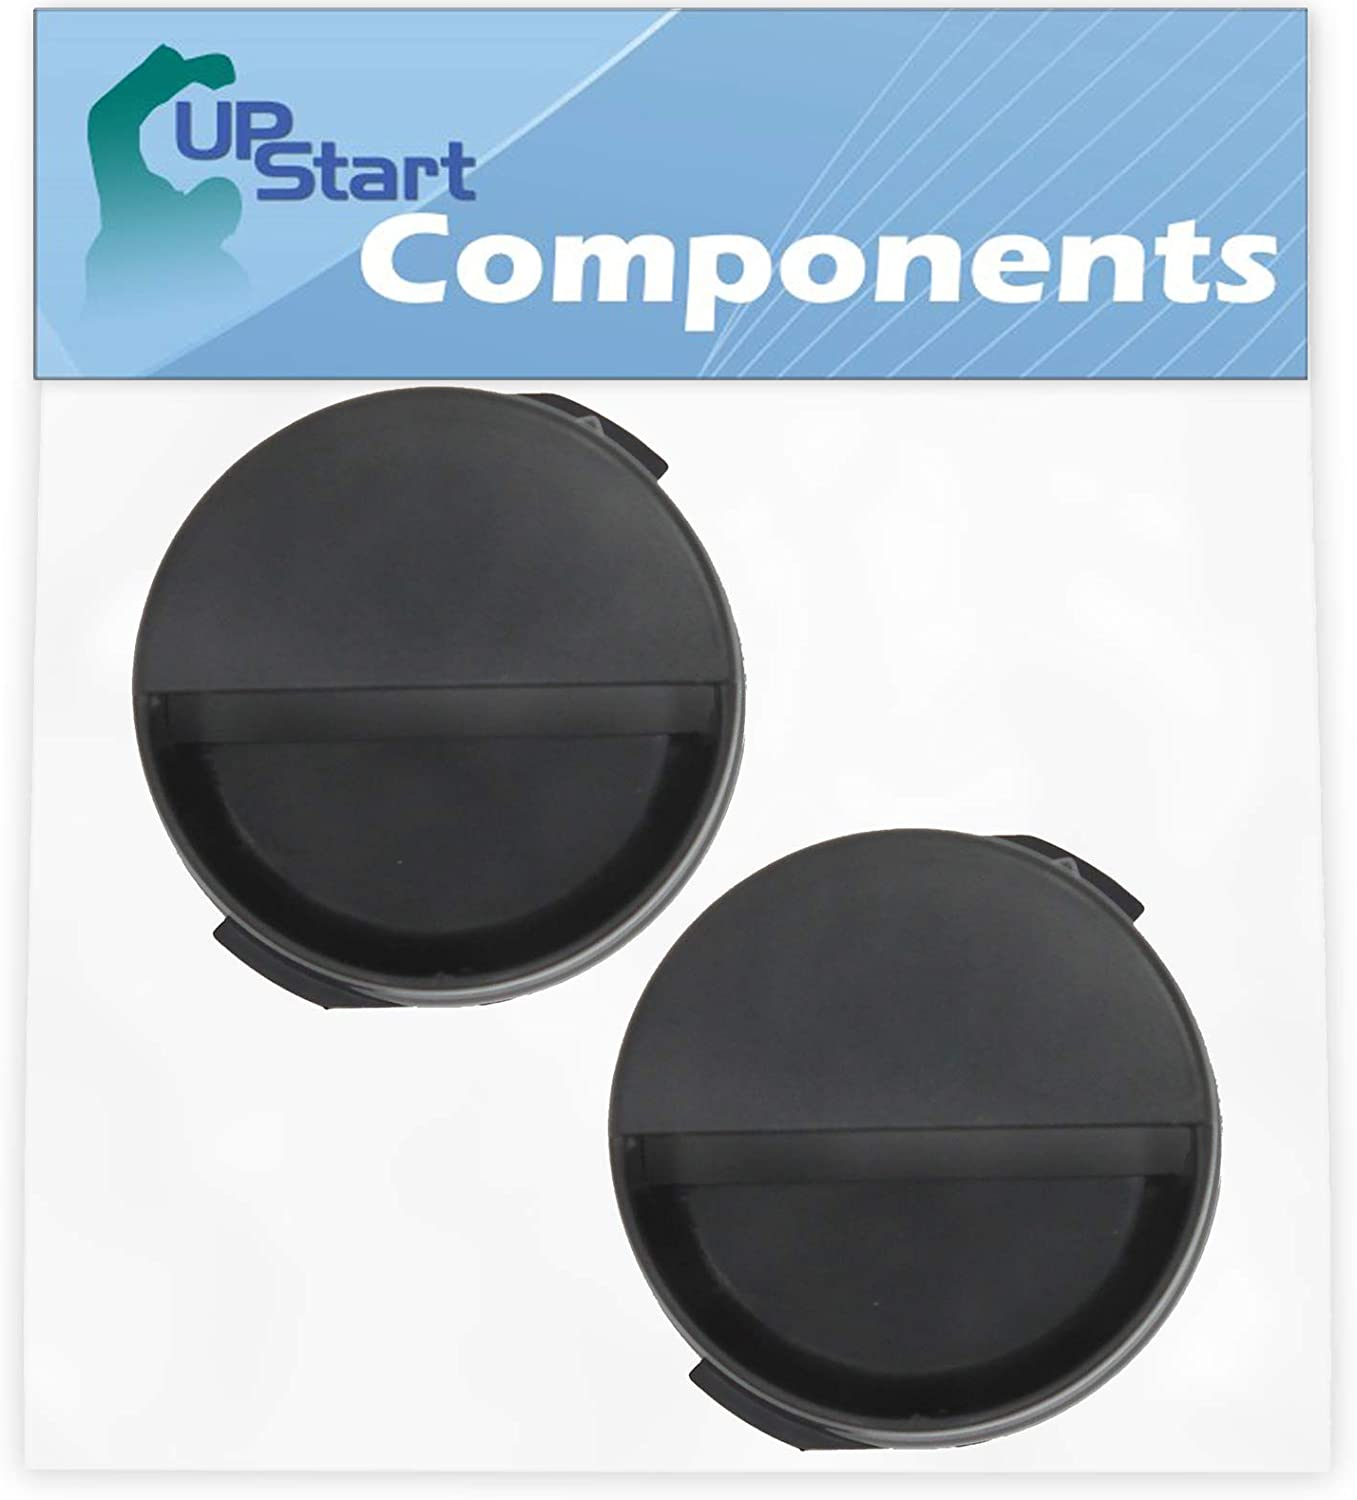 2-Pack 2260502B Refrigerator Water Filter Cap Replacement for Whirlpool ED2KHAXVS02 Refrigerator - Compatible with WP2260518B Black Water Filter Cap - UpStart Components Brand